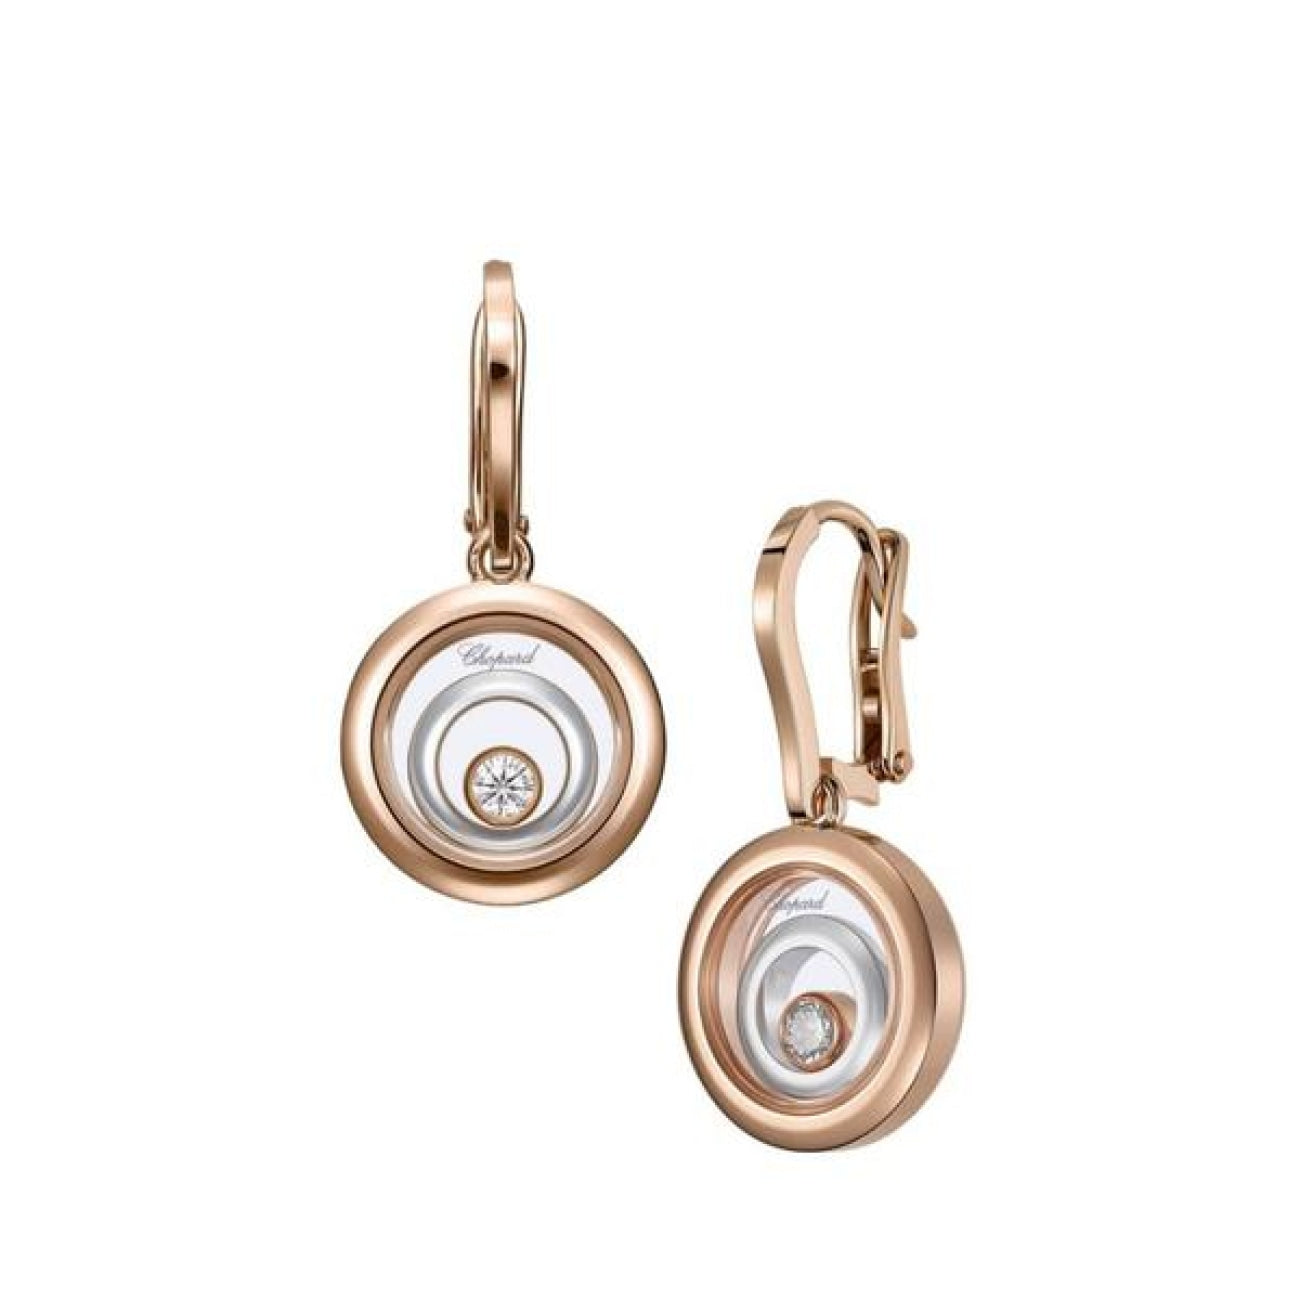 Chopard Jewelry - HAPPY SPIRIT EARRINGS 838230-9001 | Manfredi Jewels